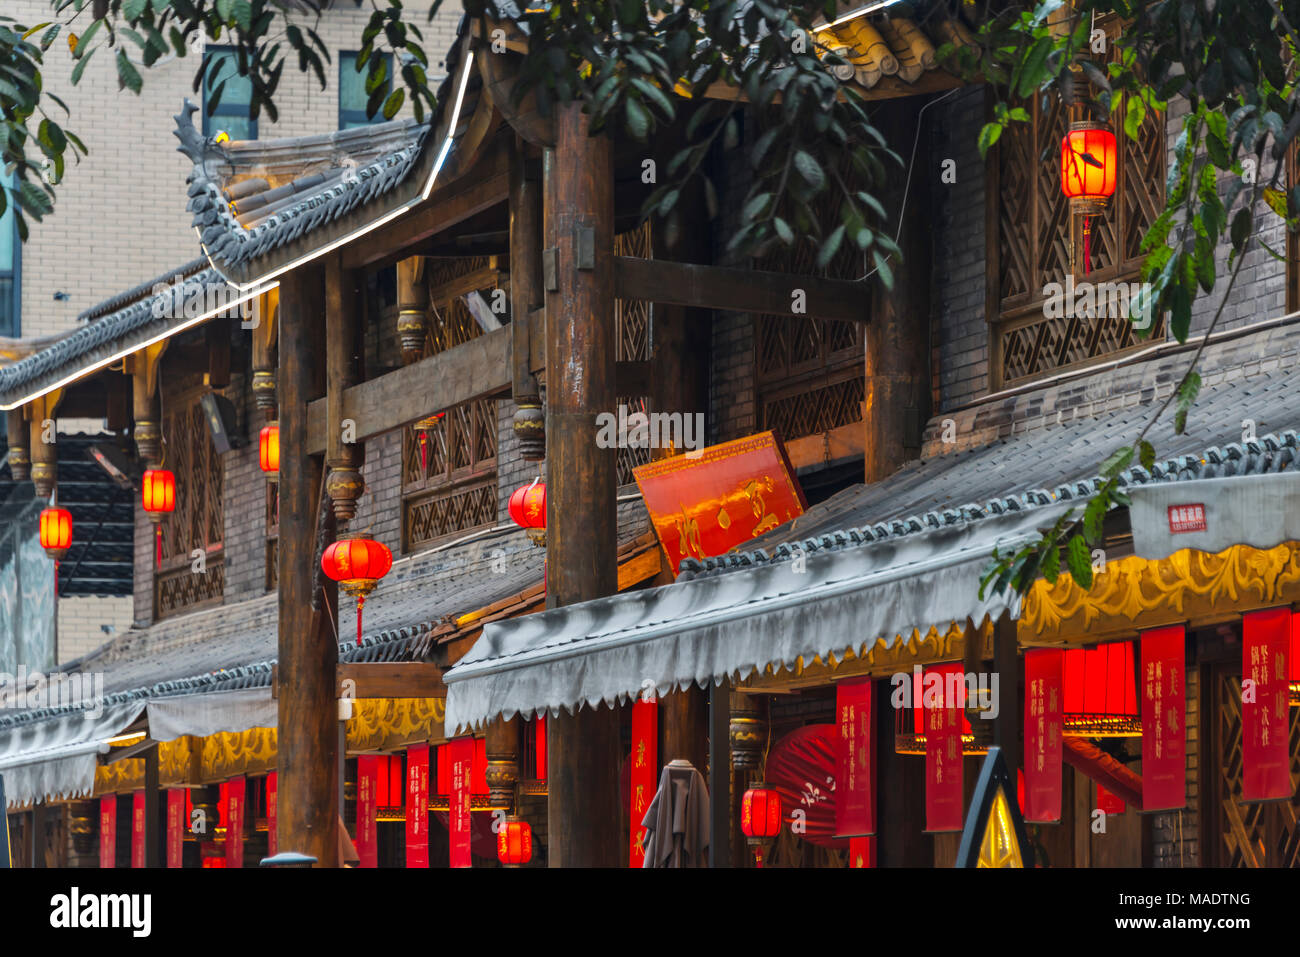 Traditional architecture, Chengdu, Sichuan Province, China - Stock Image